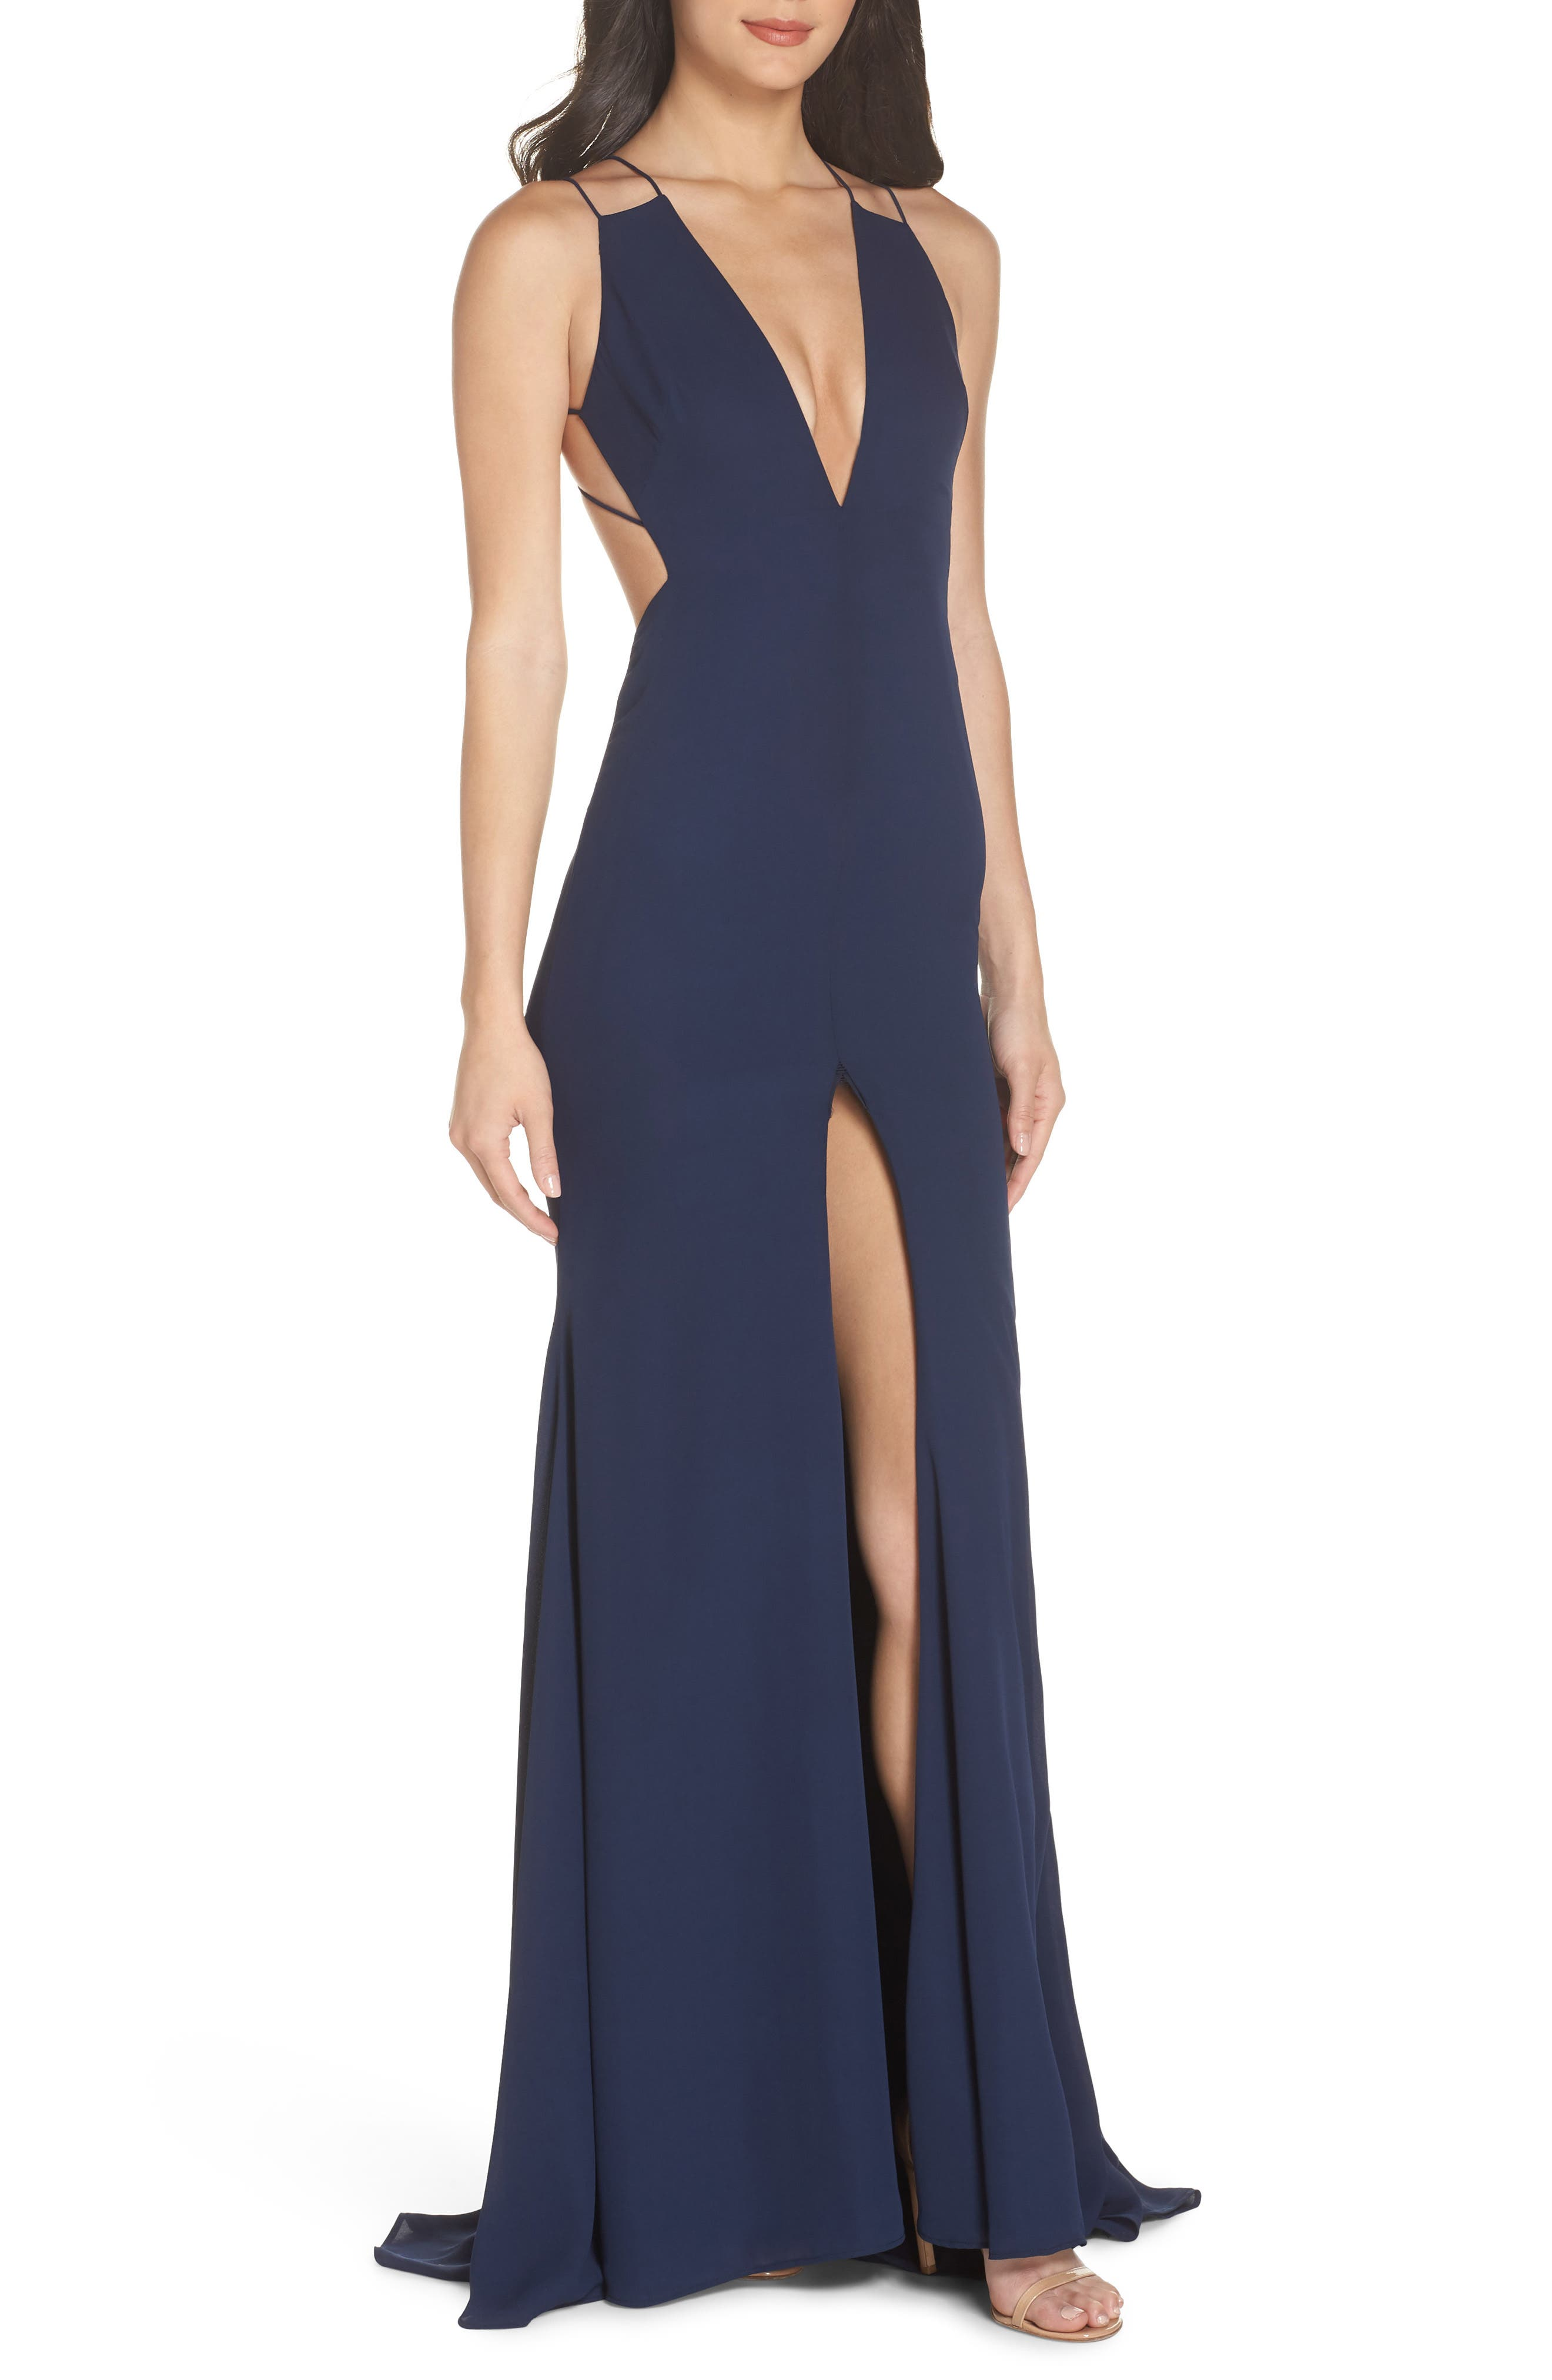 Fame & Partners Surreal Dreamer Cutout Gown,                         Main,                         color, NAVY